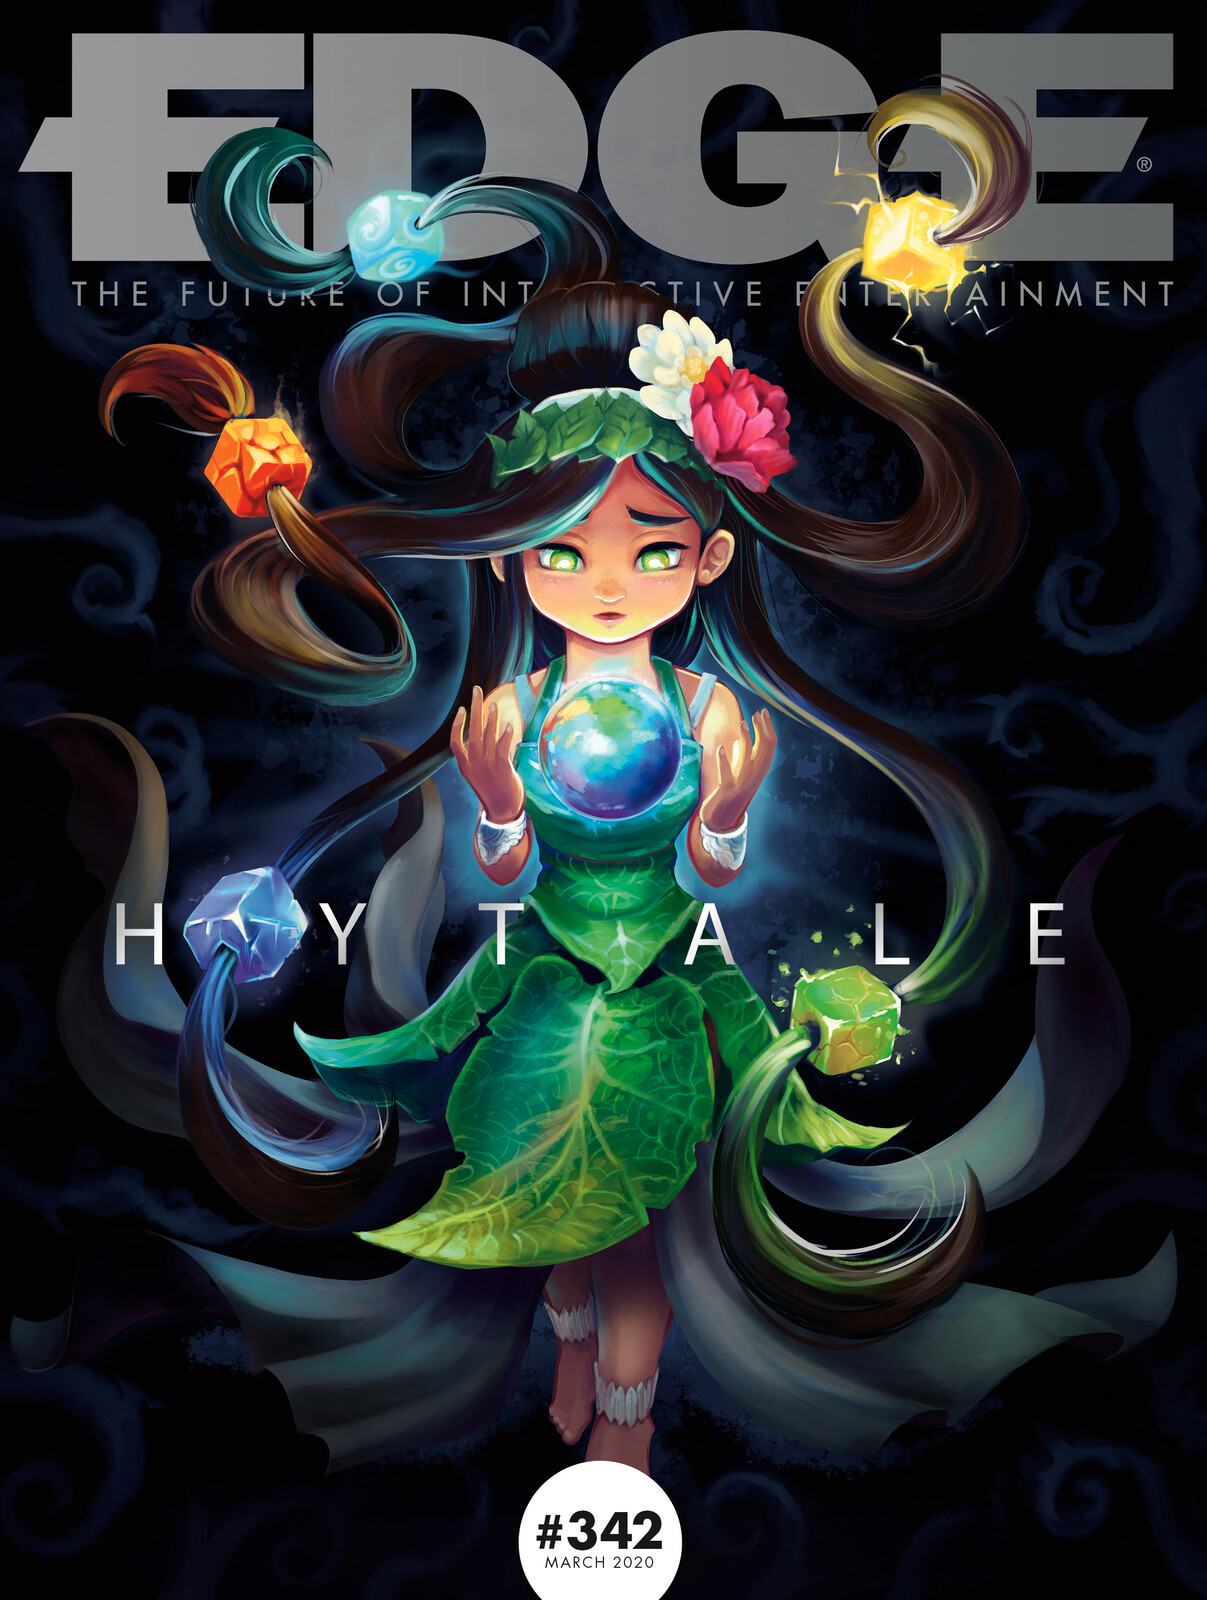 The magazine cover, titling and font by Edge magazine.